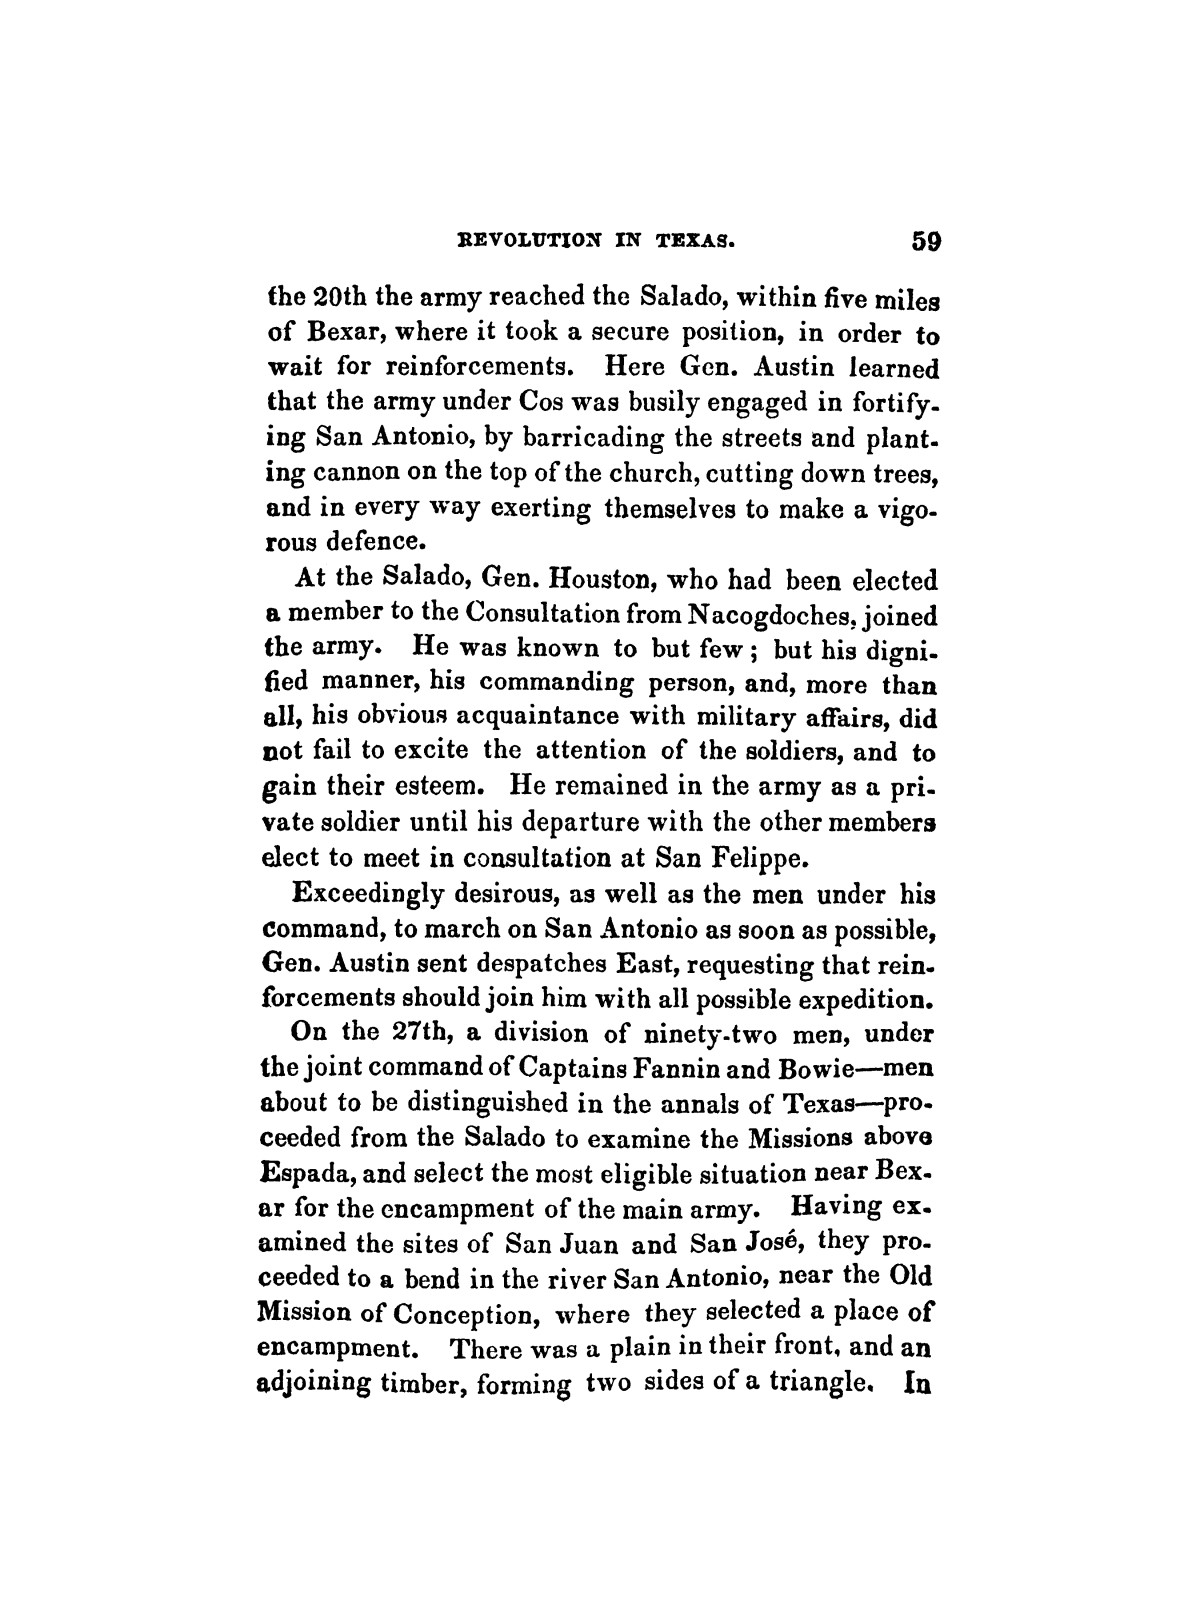 History of the revolution in Texas, particularly of the war of 1835 & '36; together with the latest geographical, topographical, and statistical accounts of the country, from the most authentic sources. Also, an appendix. By the Rev. C. Newell.                                                                                                      [Sequence #]: 71 of 227